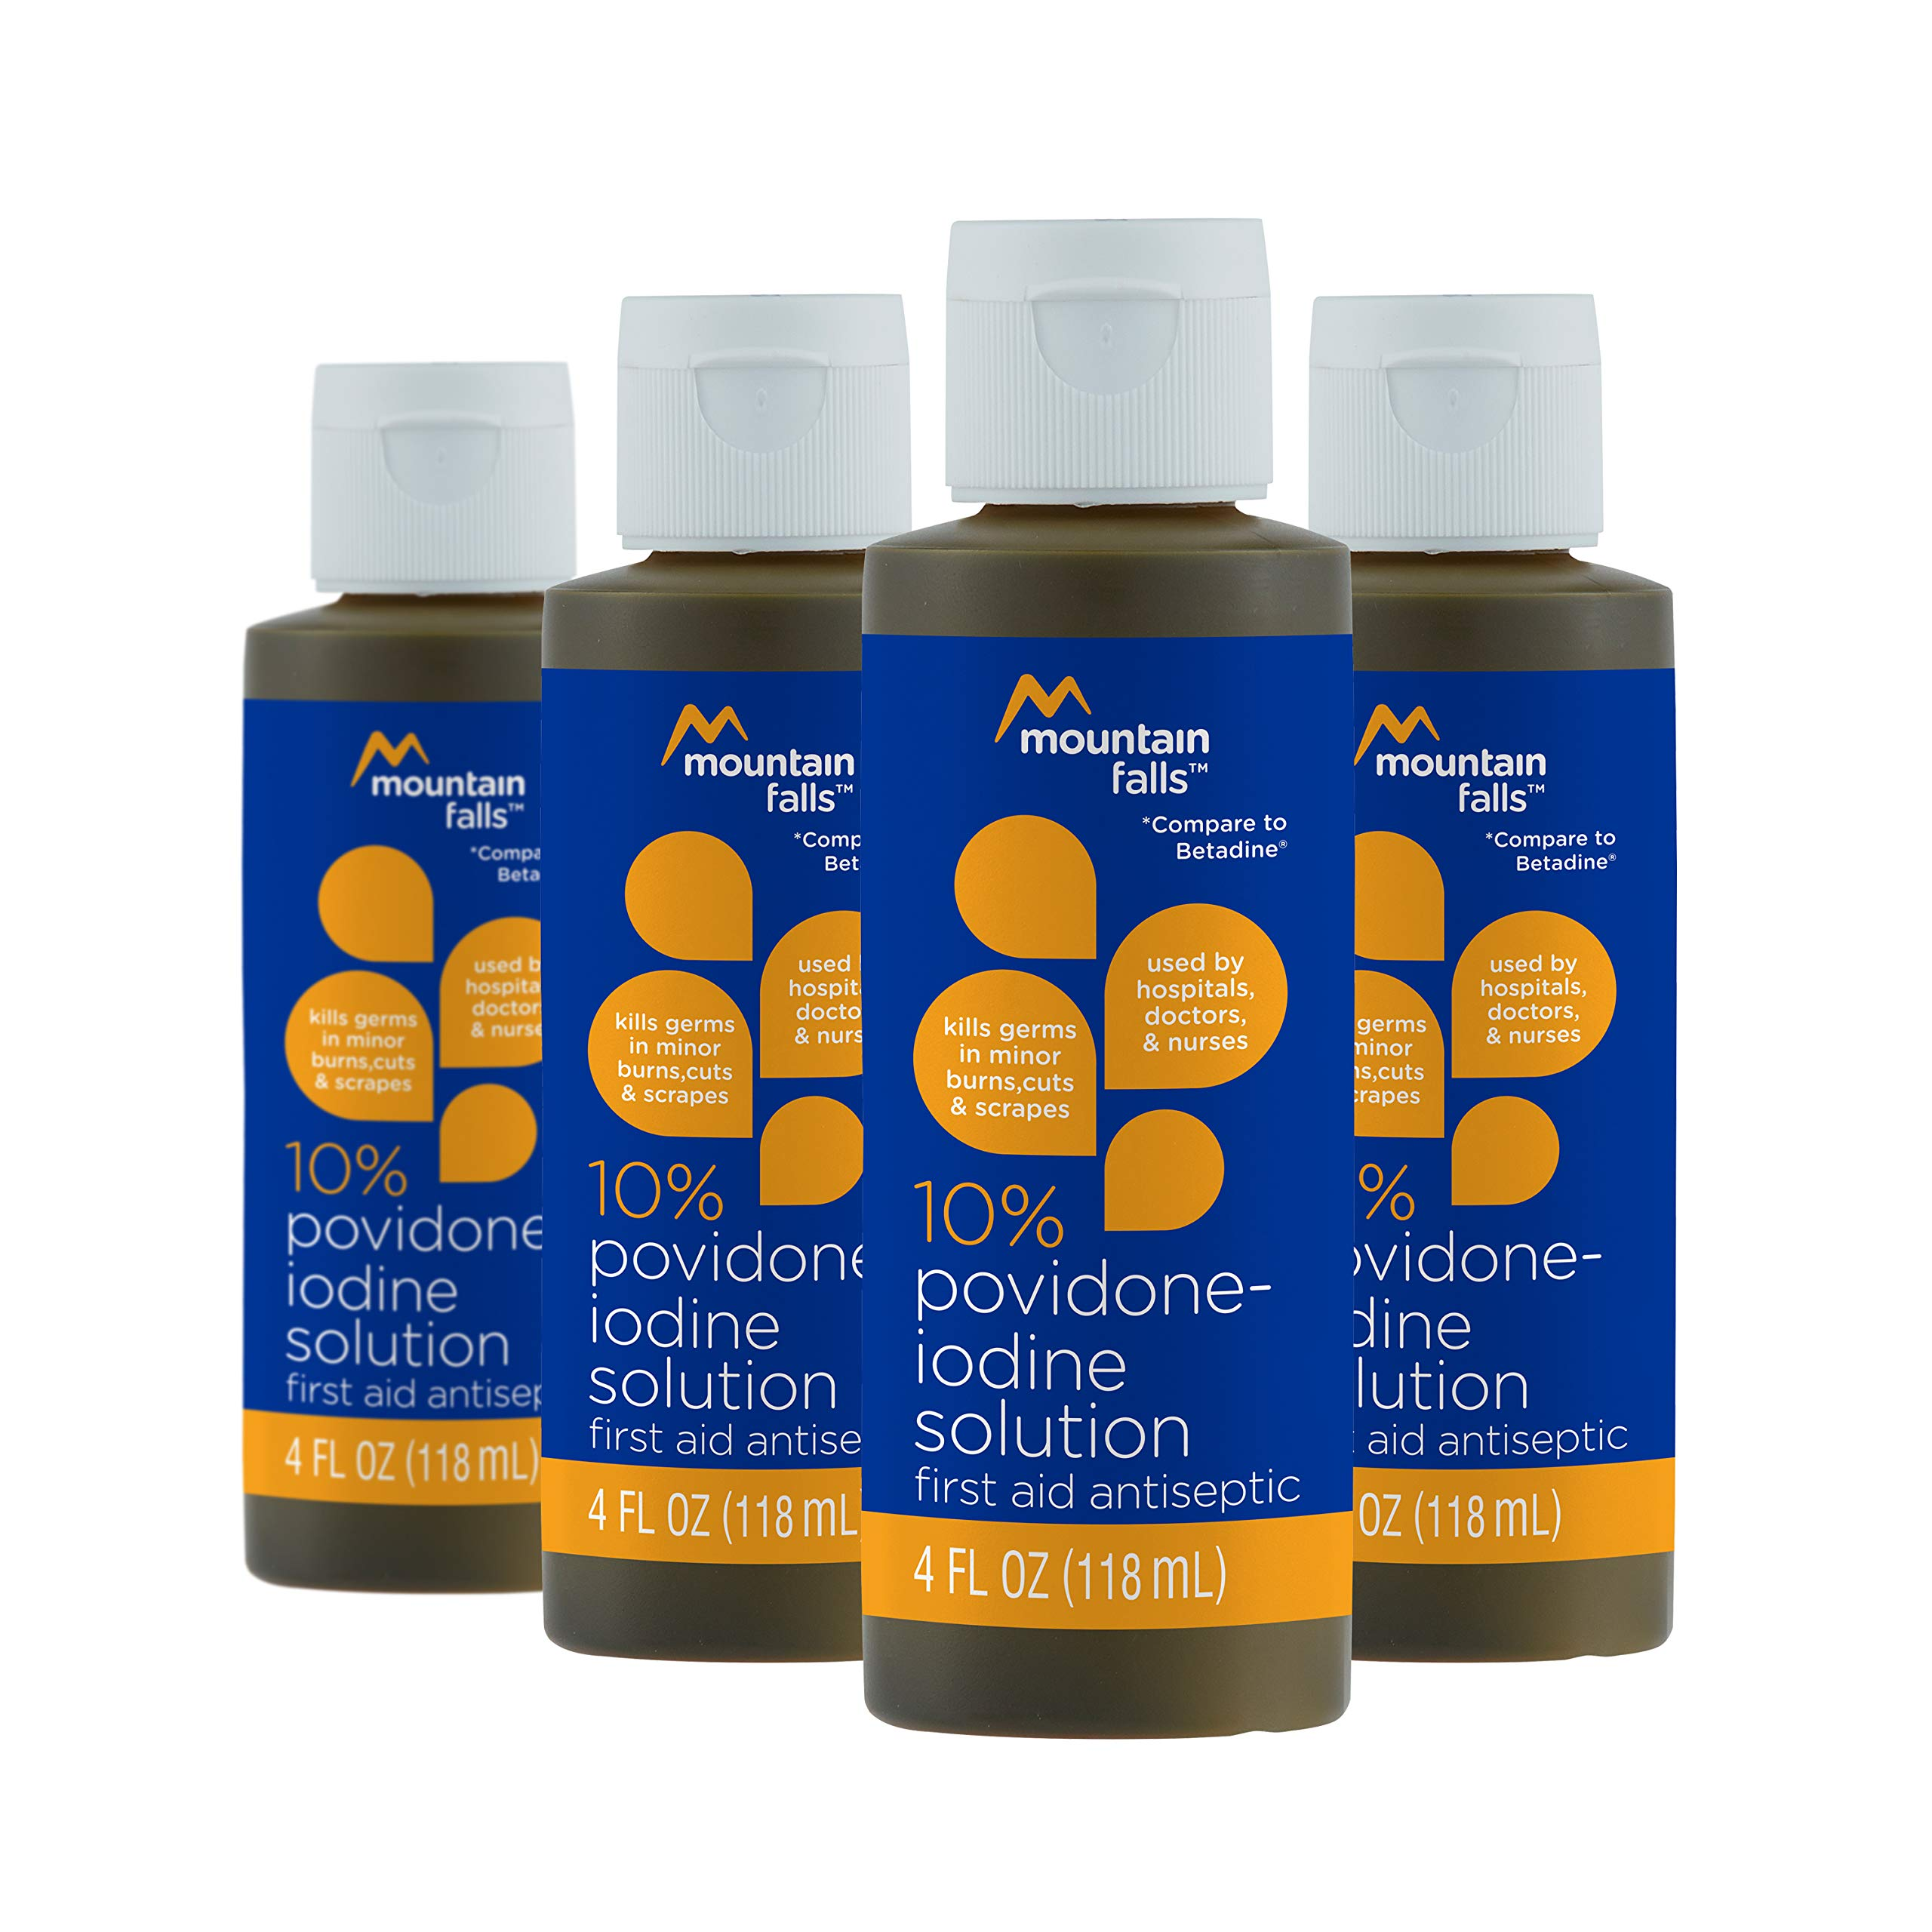 Mountain Falls 10% Povidone Iodine Solution First Aid Antiseptic for Minor Burns, Cuts, and Scrapes, Compare to Betadine, 4 Fluid Ounce (Pack of 4)